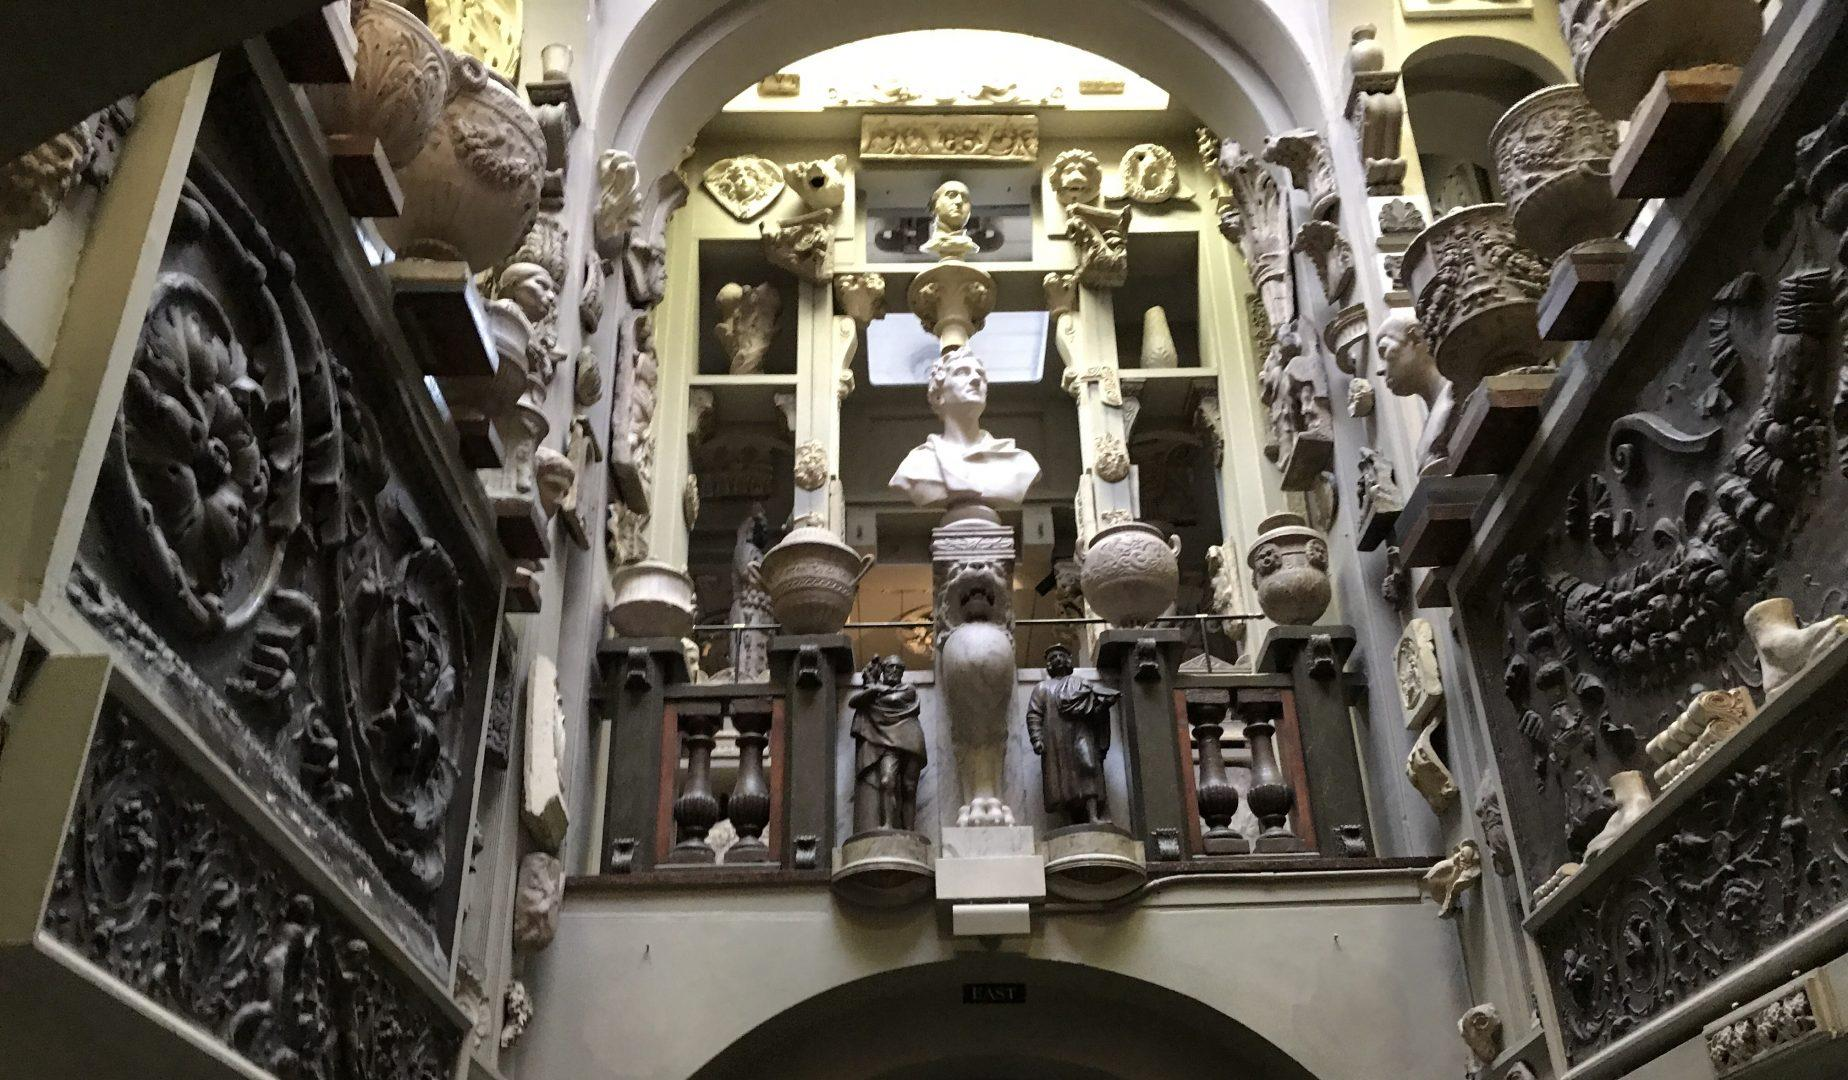 Soane's extensive collection of artifacts includes everything from busts and pottery to statues and paintings. (KARALEE ROGERS/ THE OBSERVER)